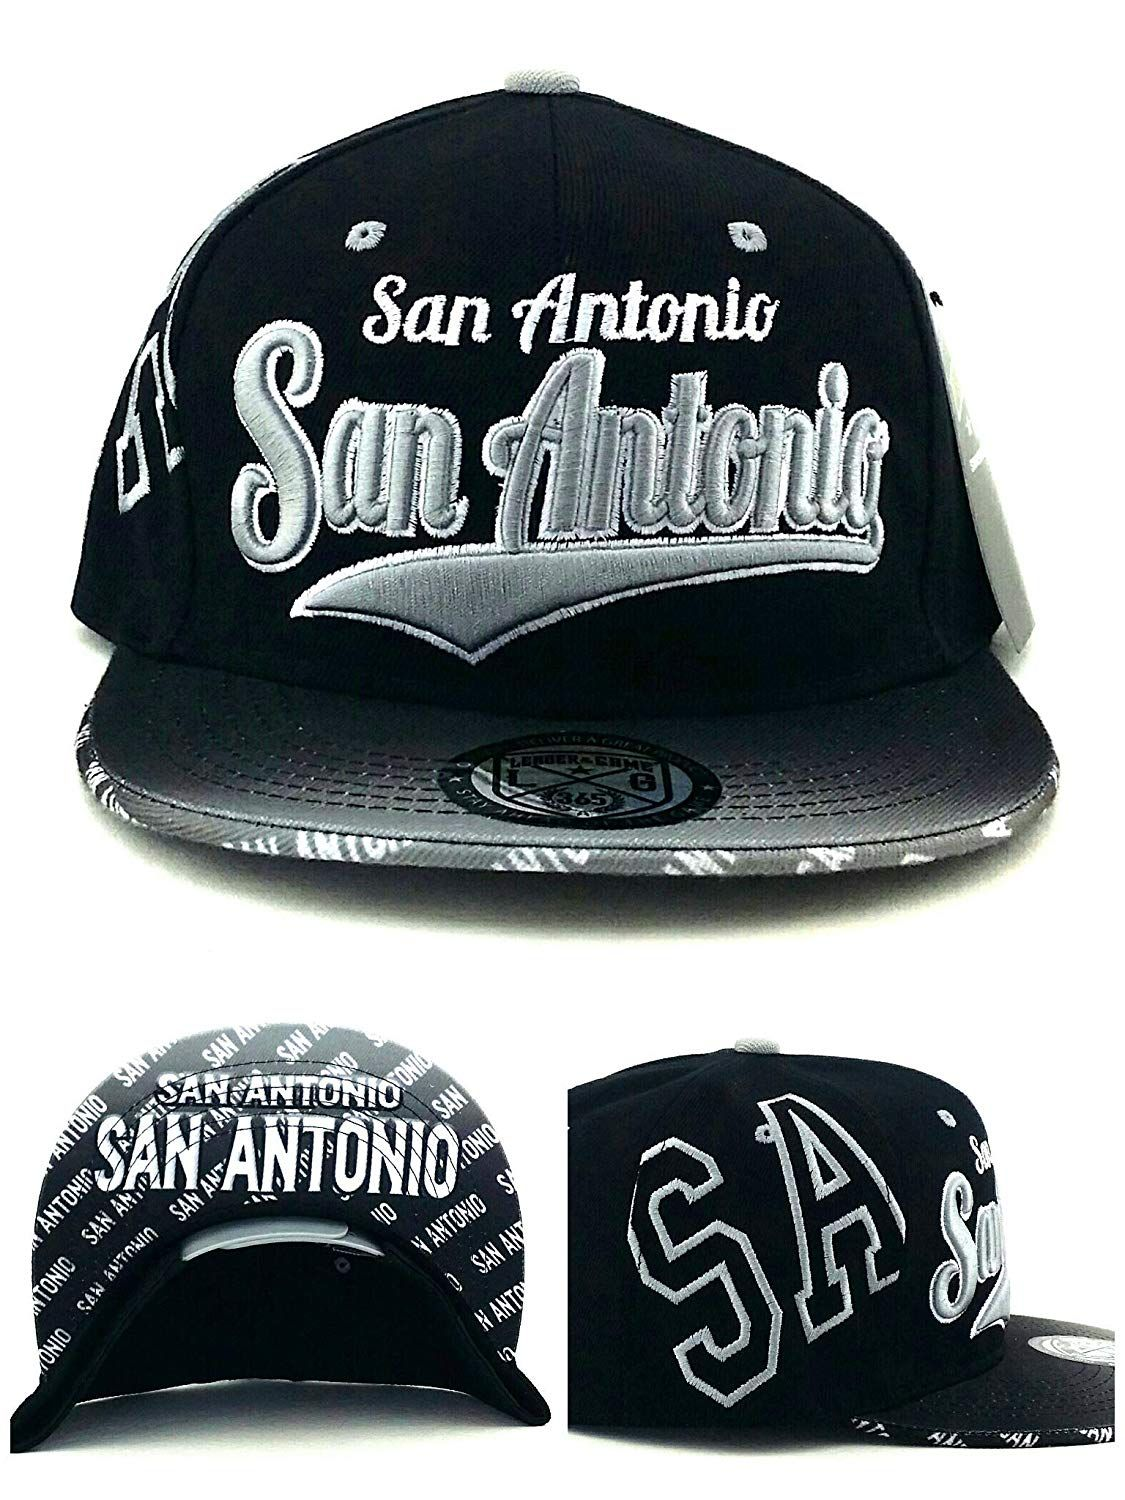 66891b247f6fd9 San Antonio New Leader Flash Fade Spurs Colors Black Gray Era Snapback Hat,  $17.99